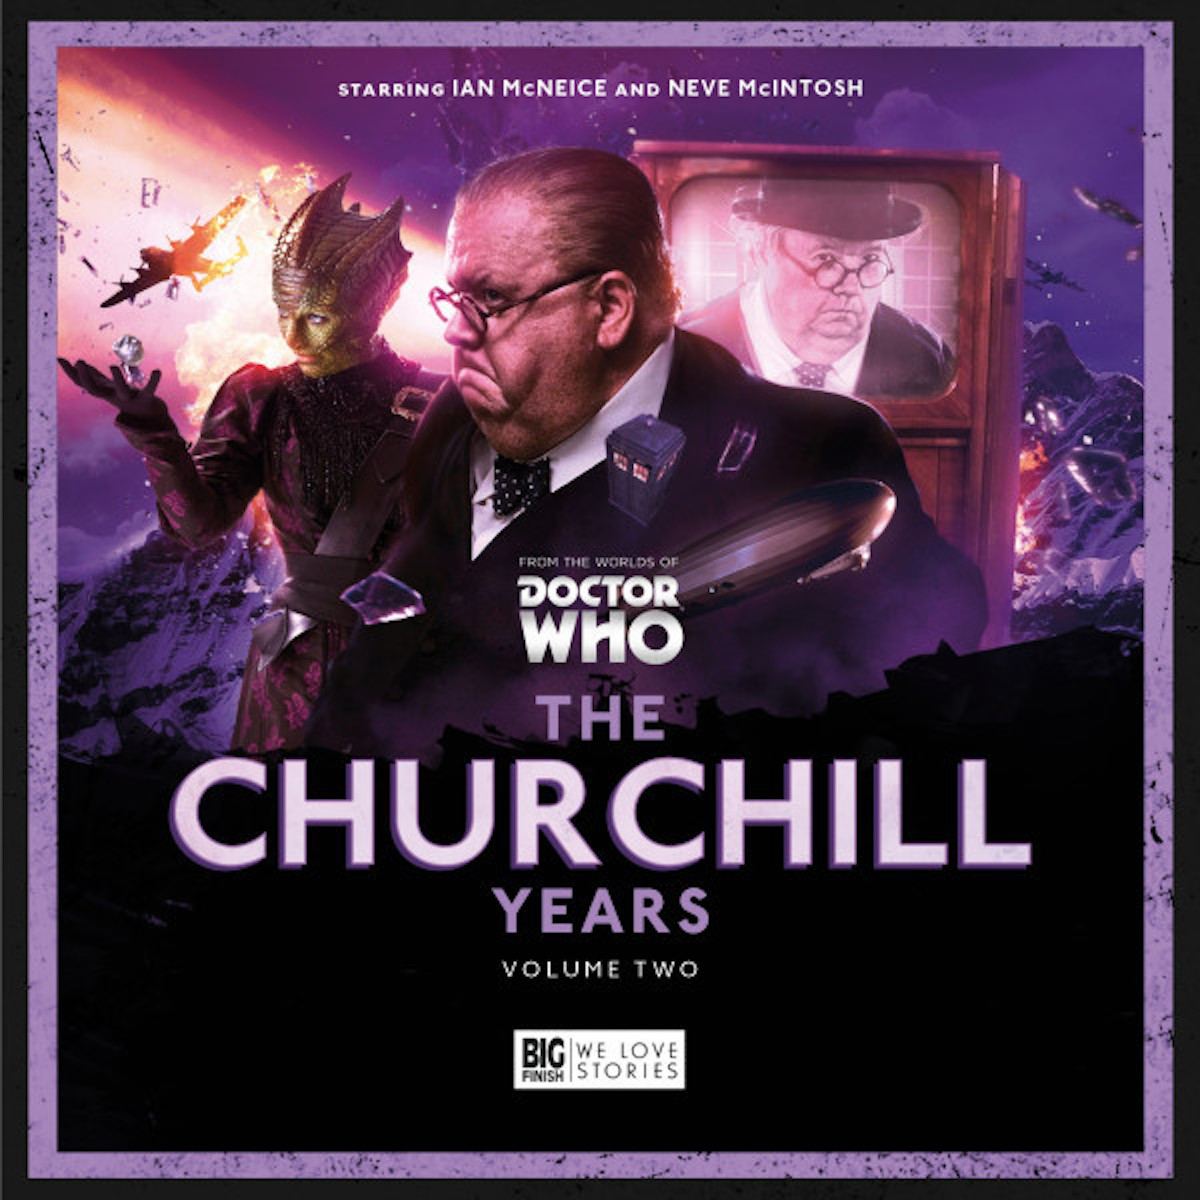 The Churchill Years volume 2